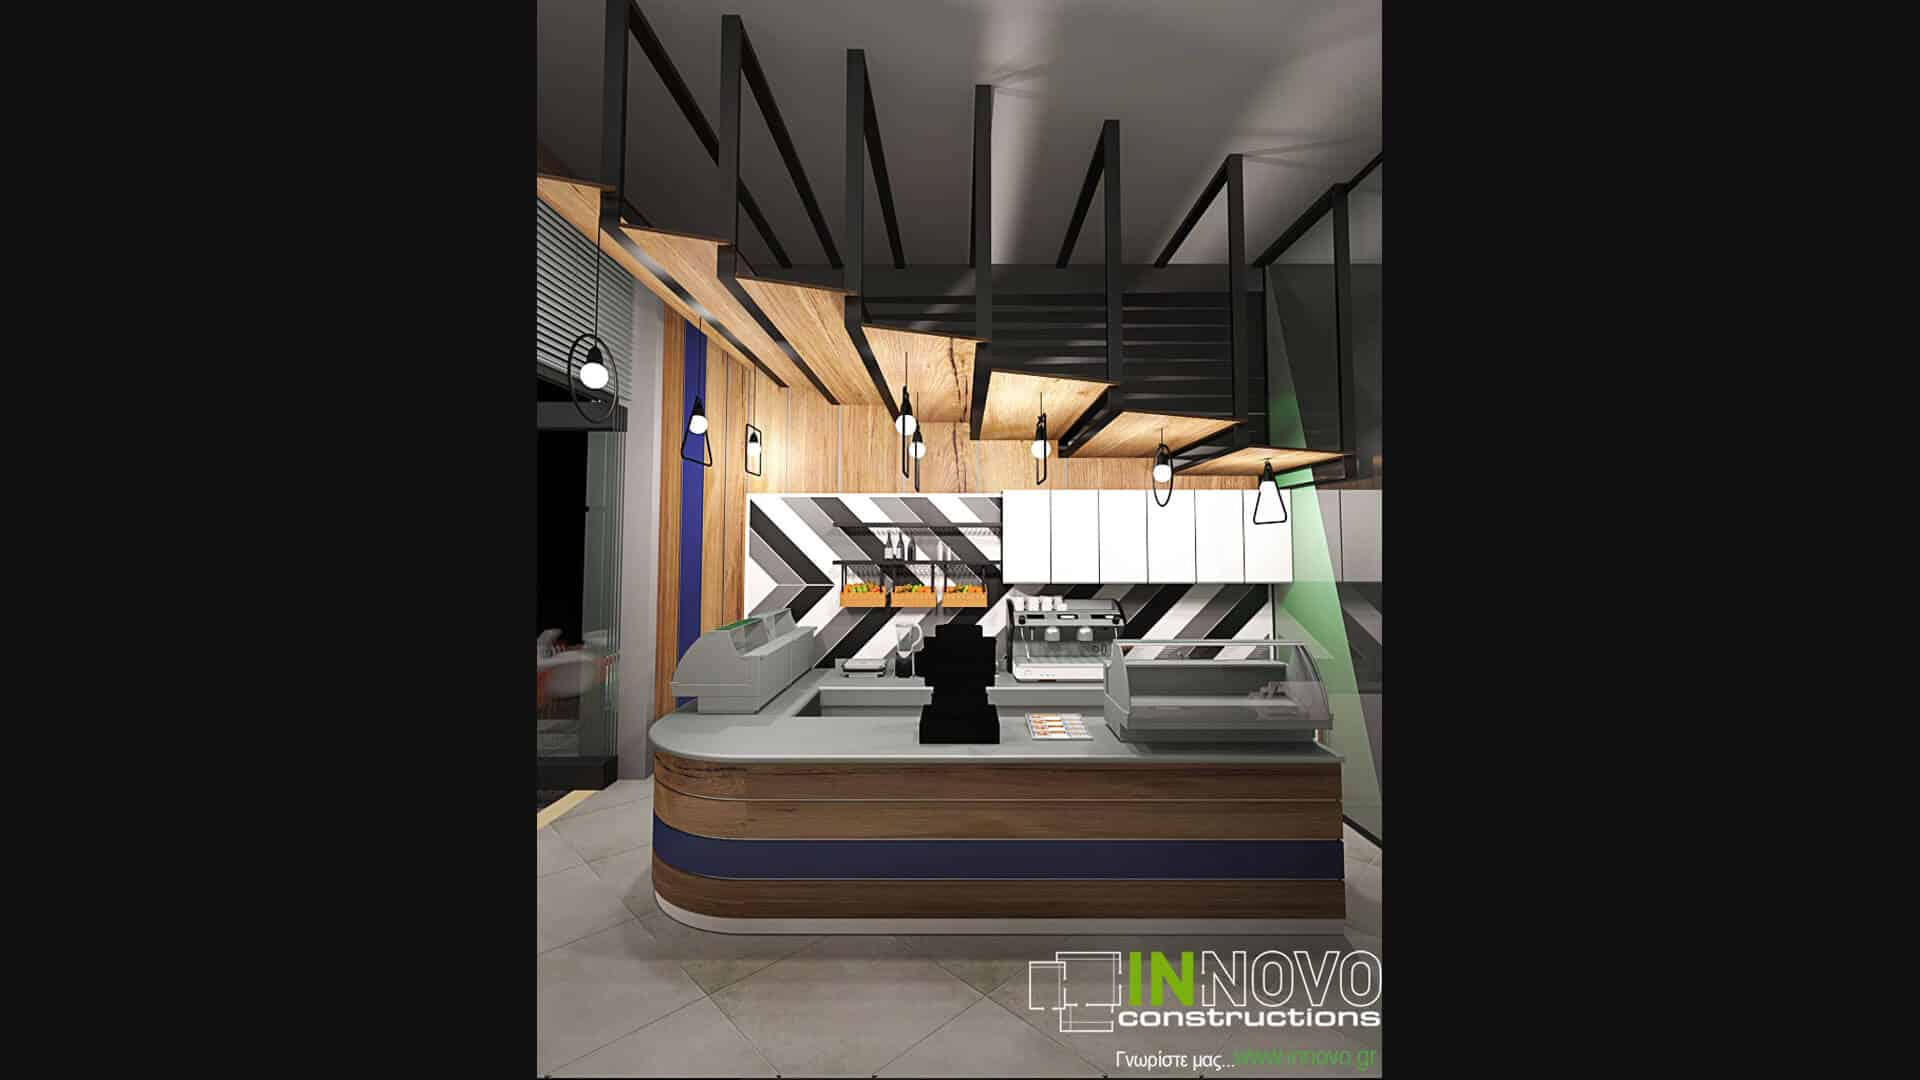 ανακαινιση-snack-cafe-kallithea-snack-cafe-renovation